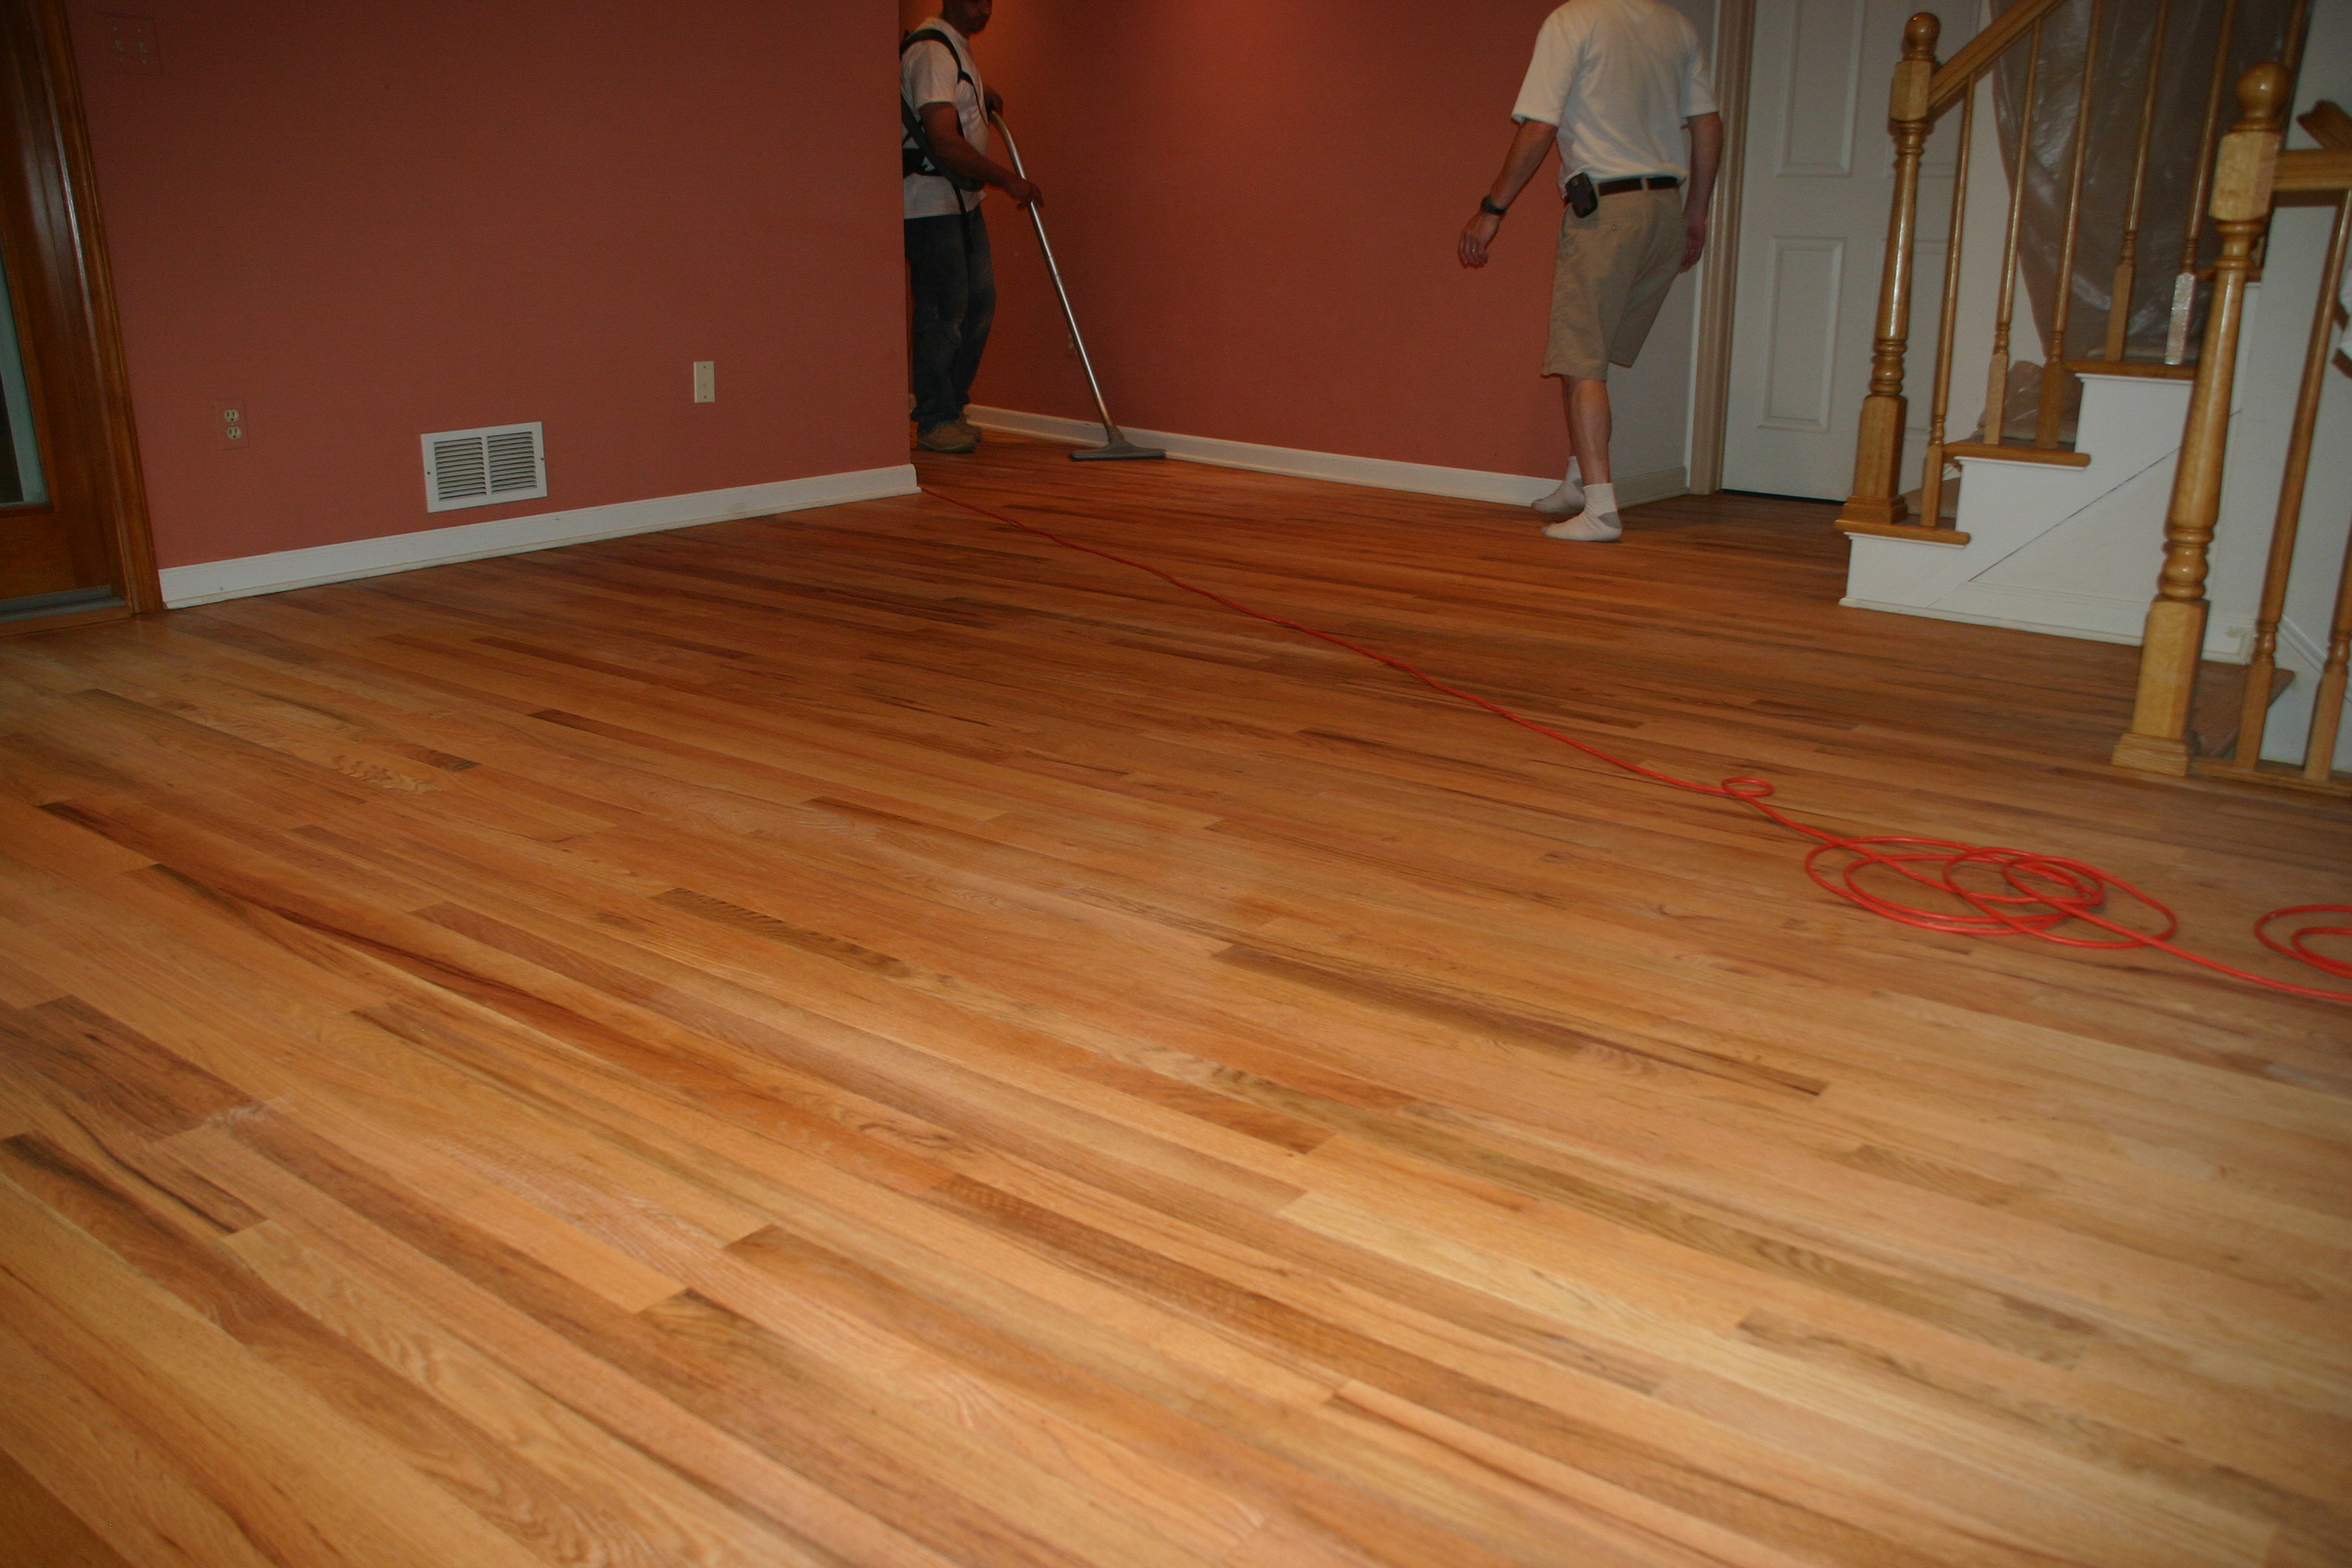 laminate applewood hardwood floors pecan floor protect swatch compare lrg durable plus spill pergo flooring outlast